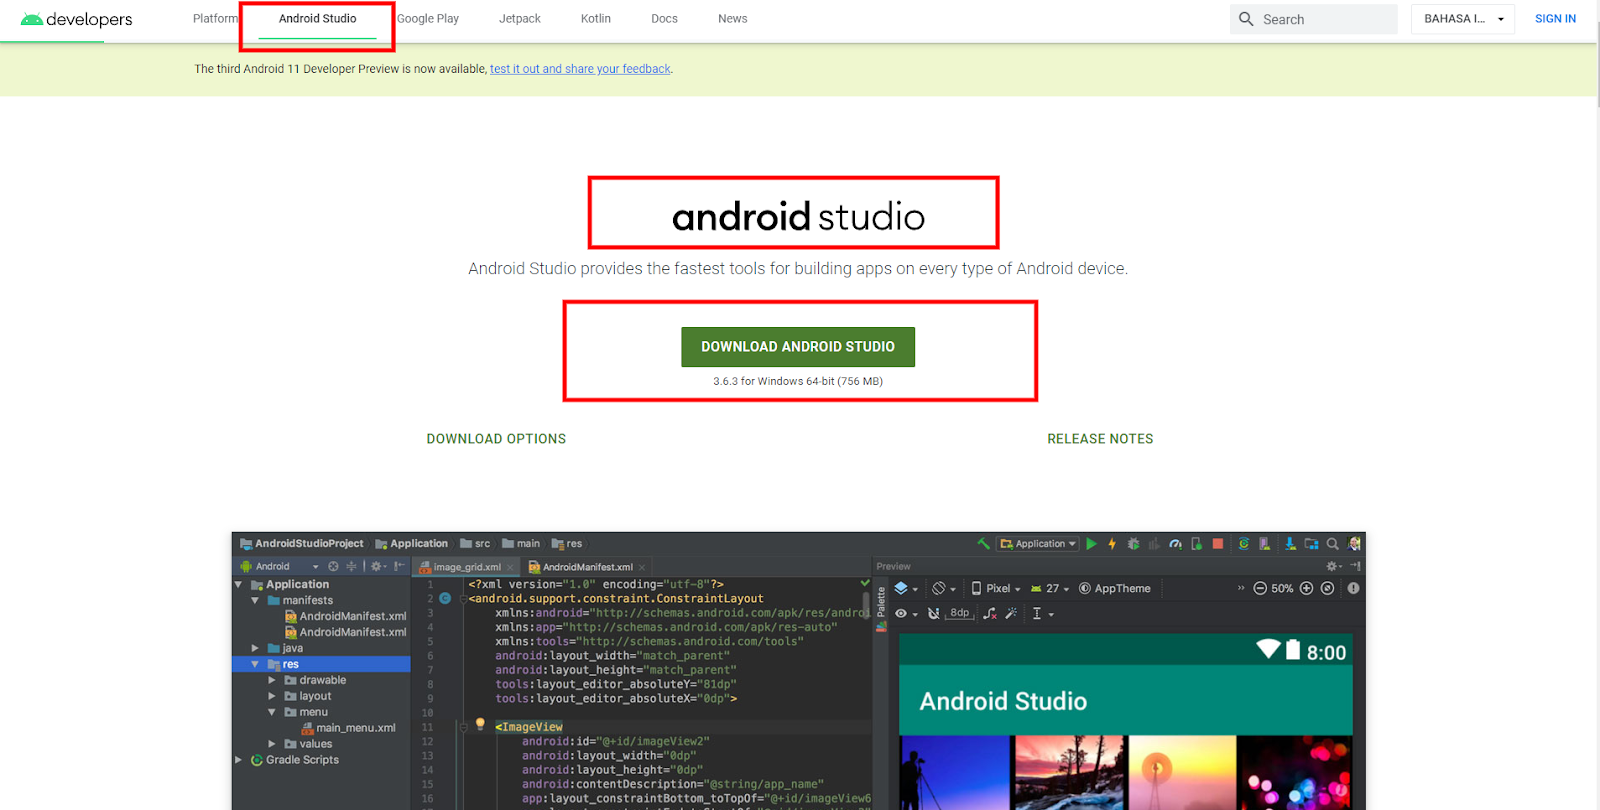 Android Studio Download (2020 Latest) for Windows 10, 8, 7